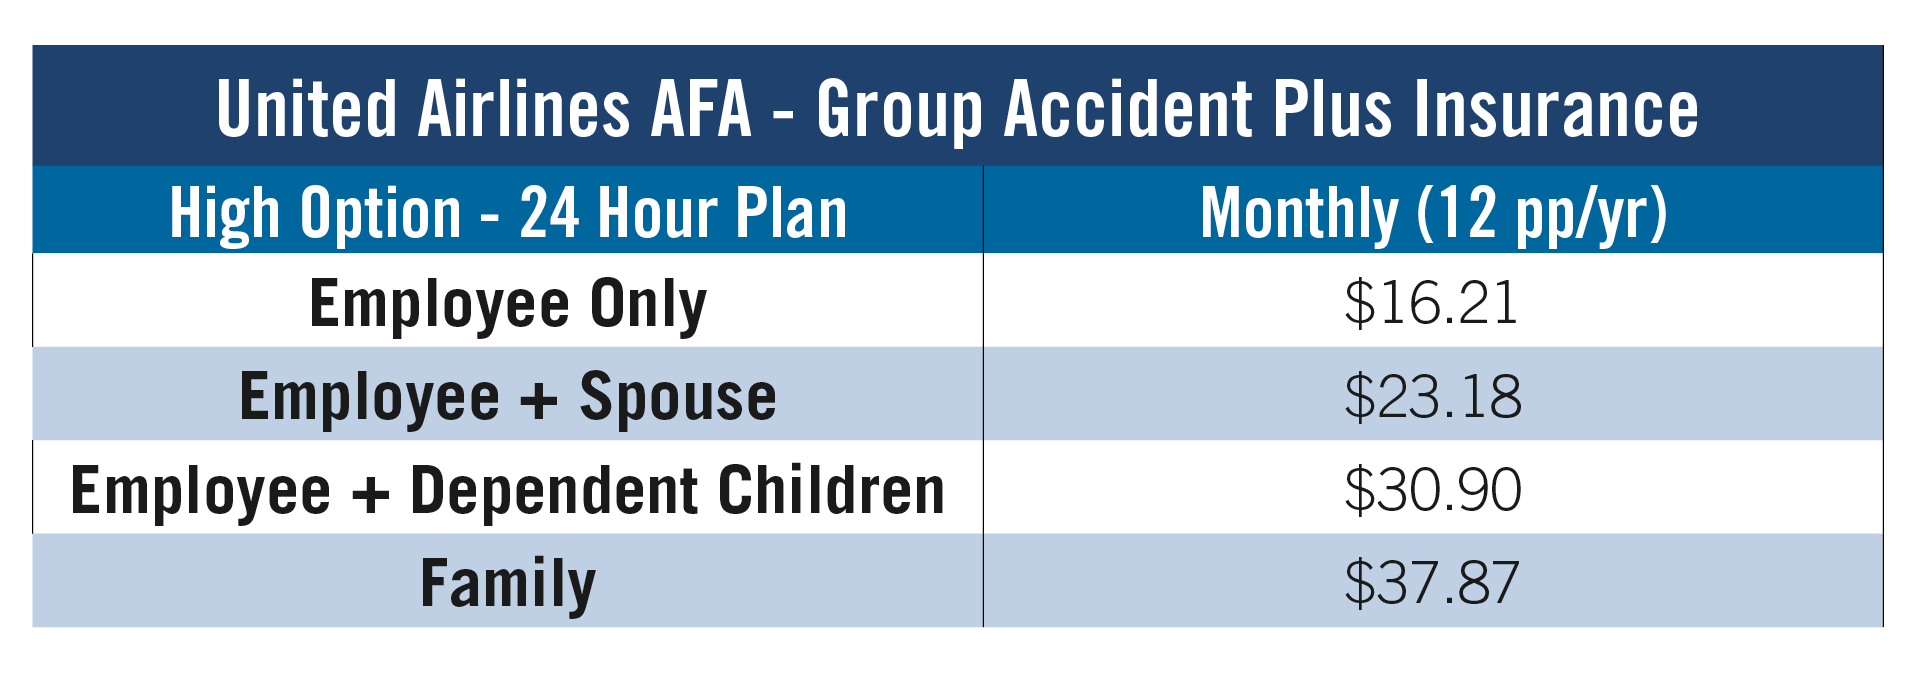 How To File An Emergency Room Claim With Aflac